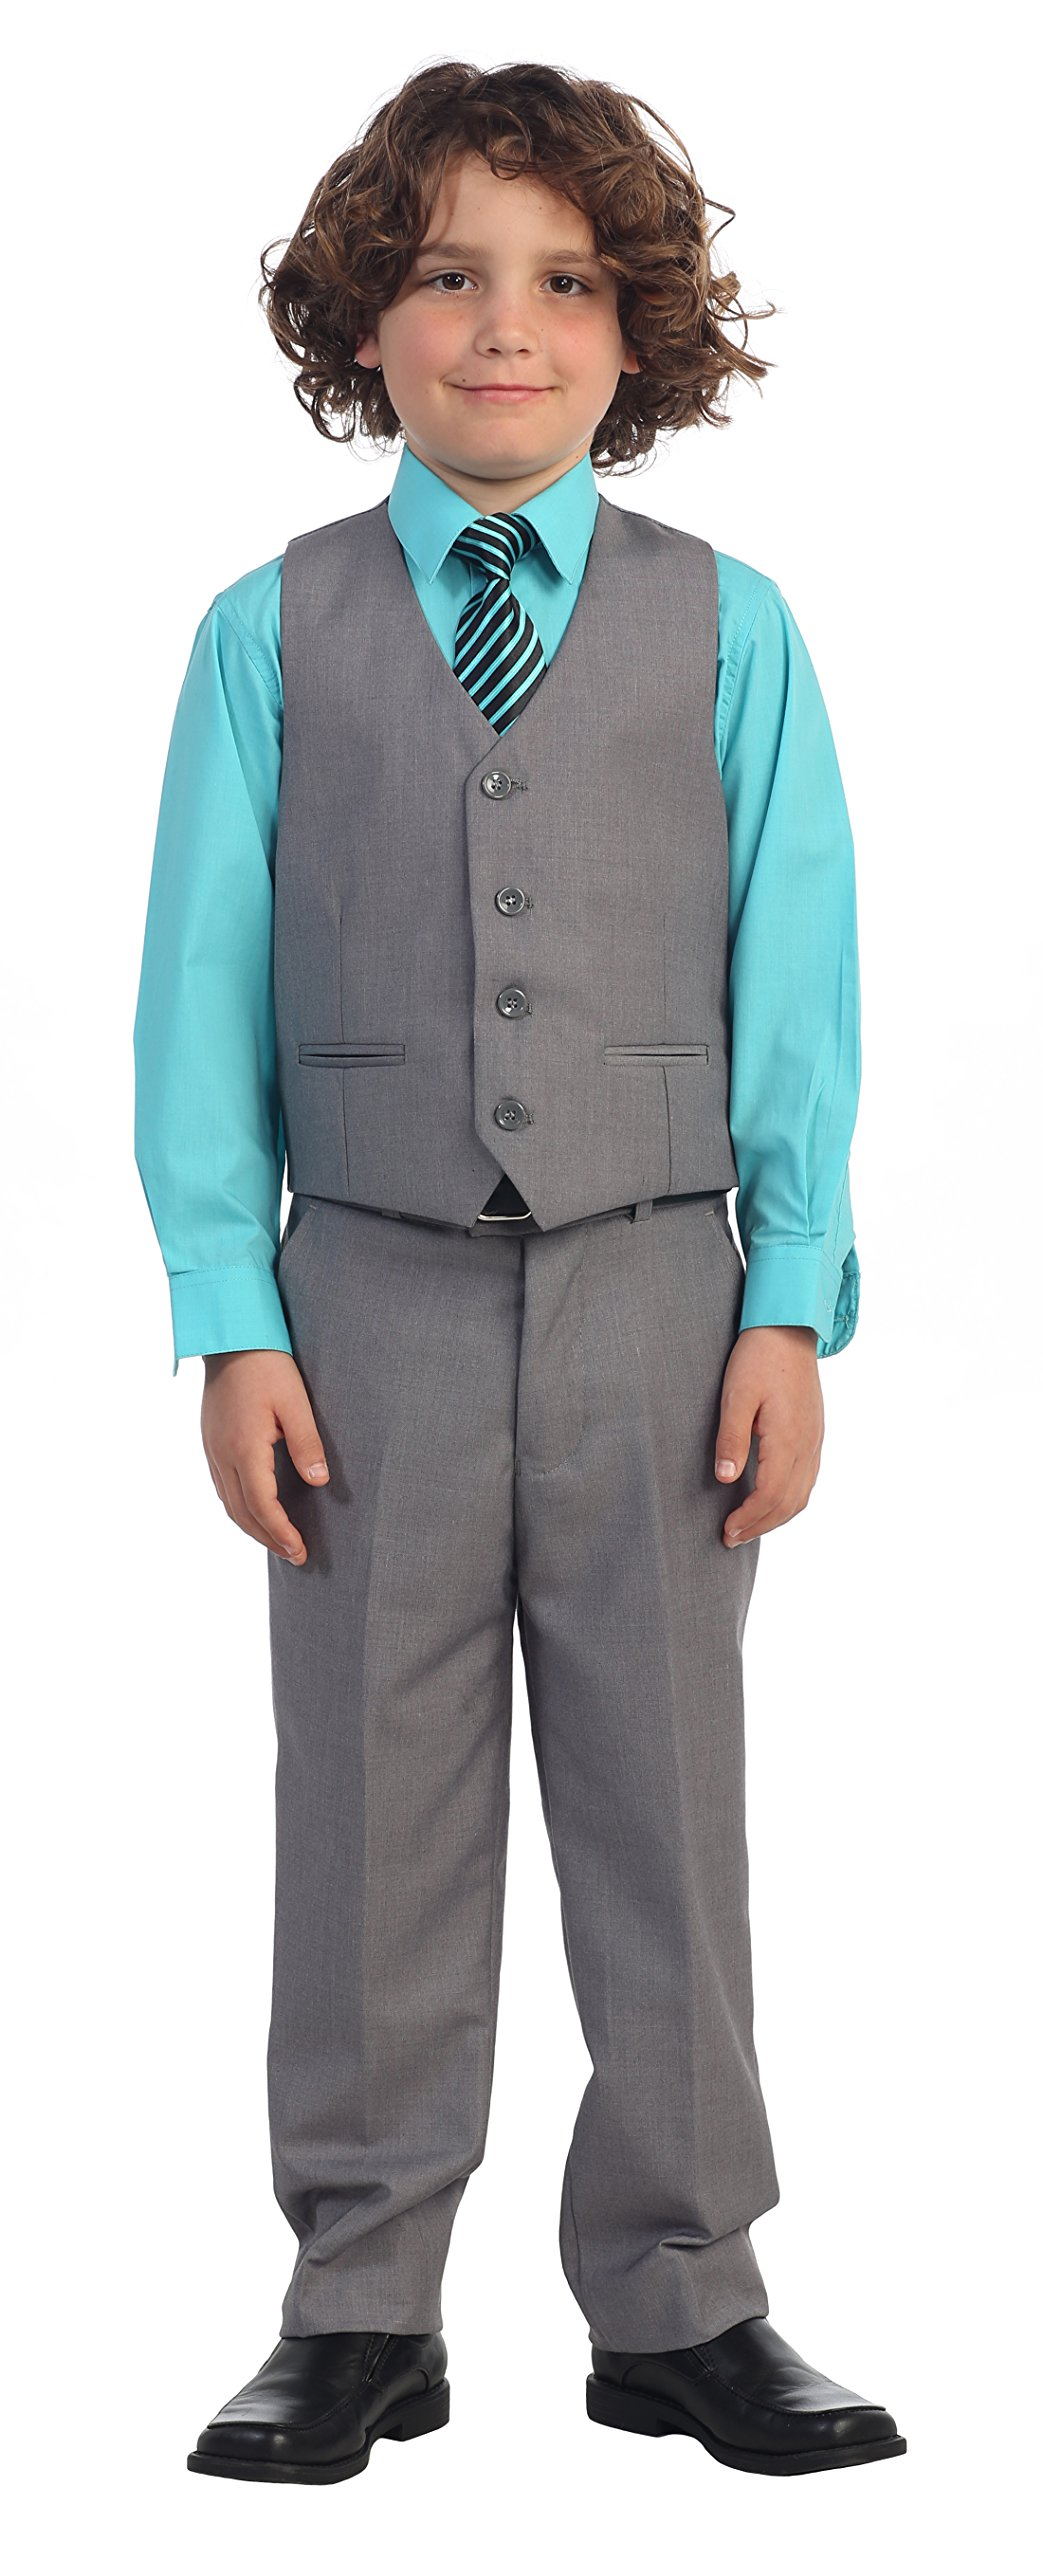 2 Piece Kids Boys Gray Vest and Pants Formal Set, 4T by Gioberti (Image #4)